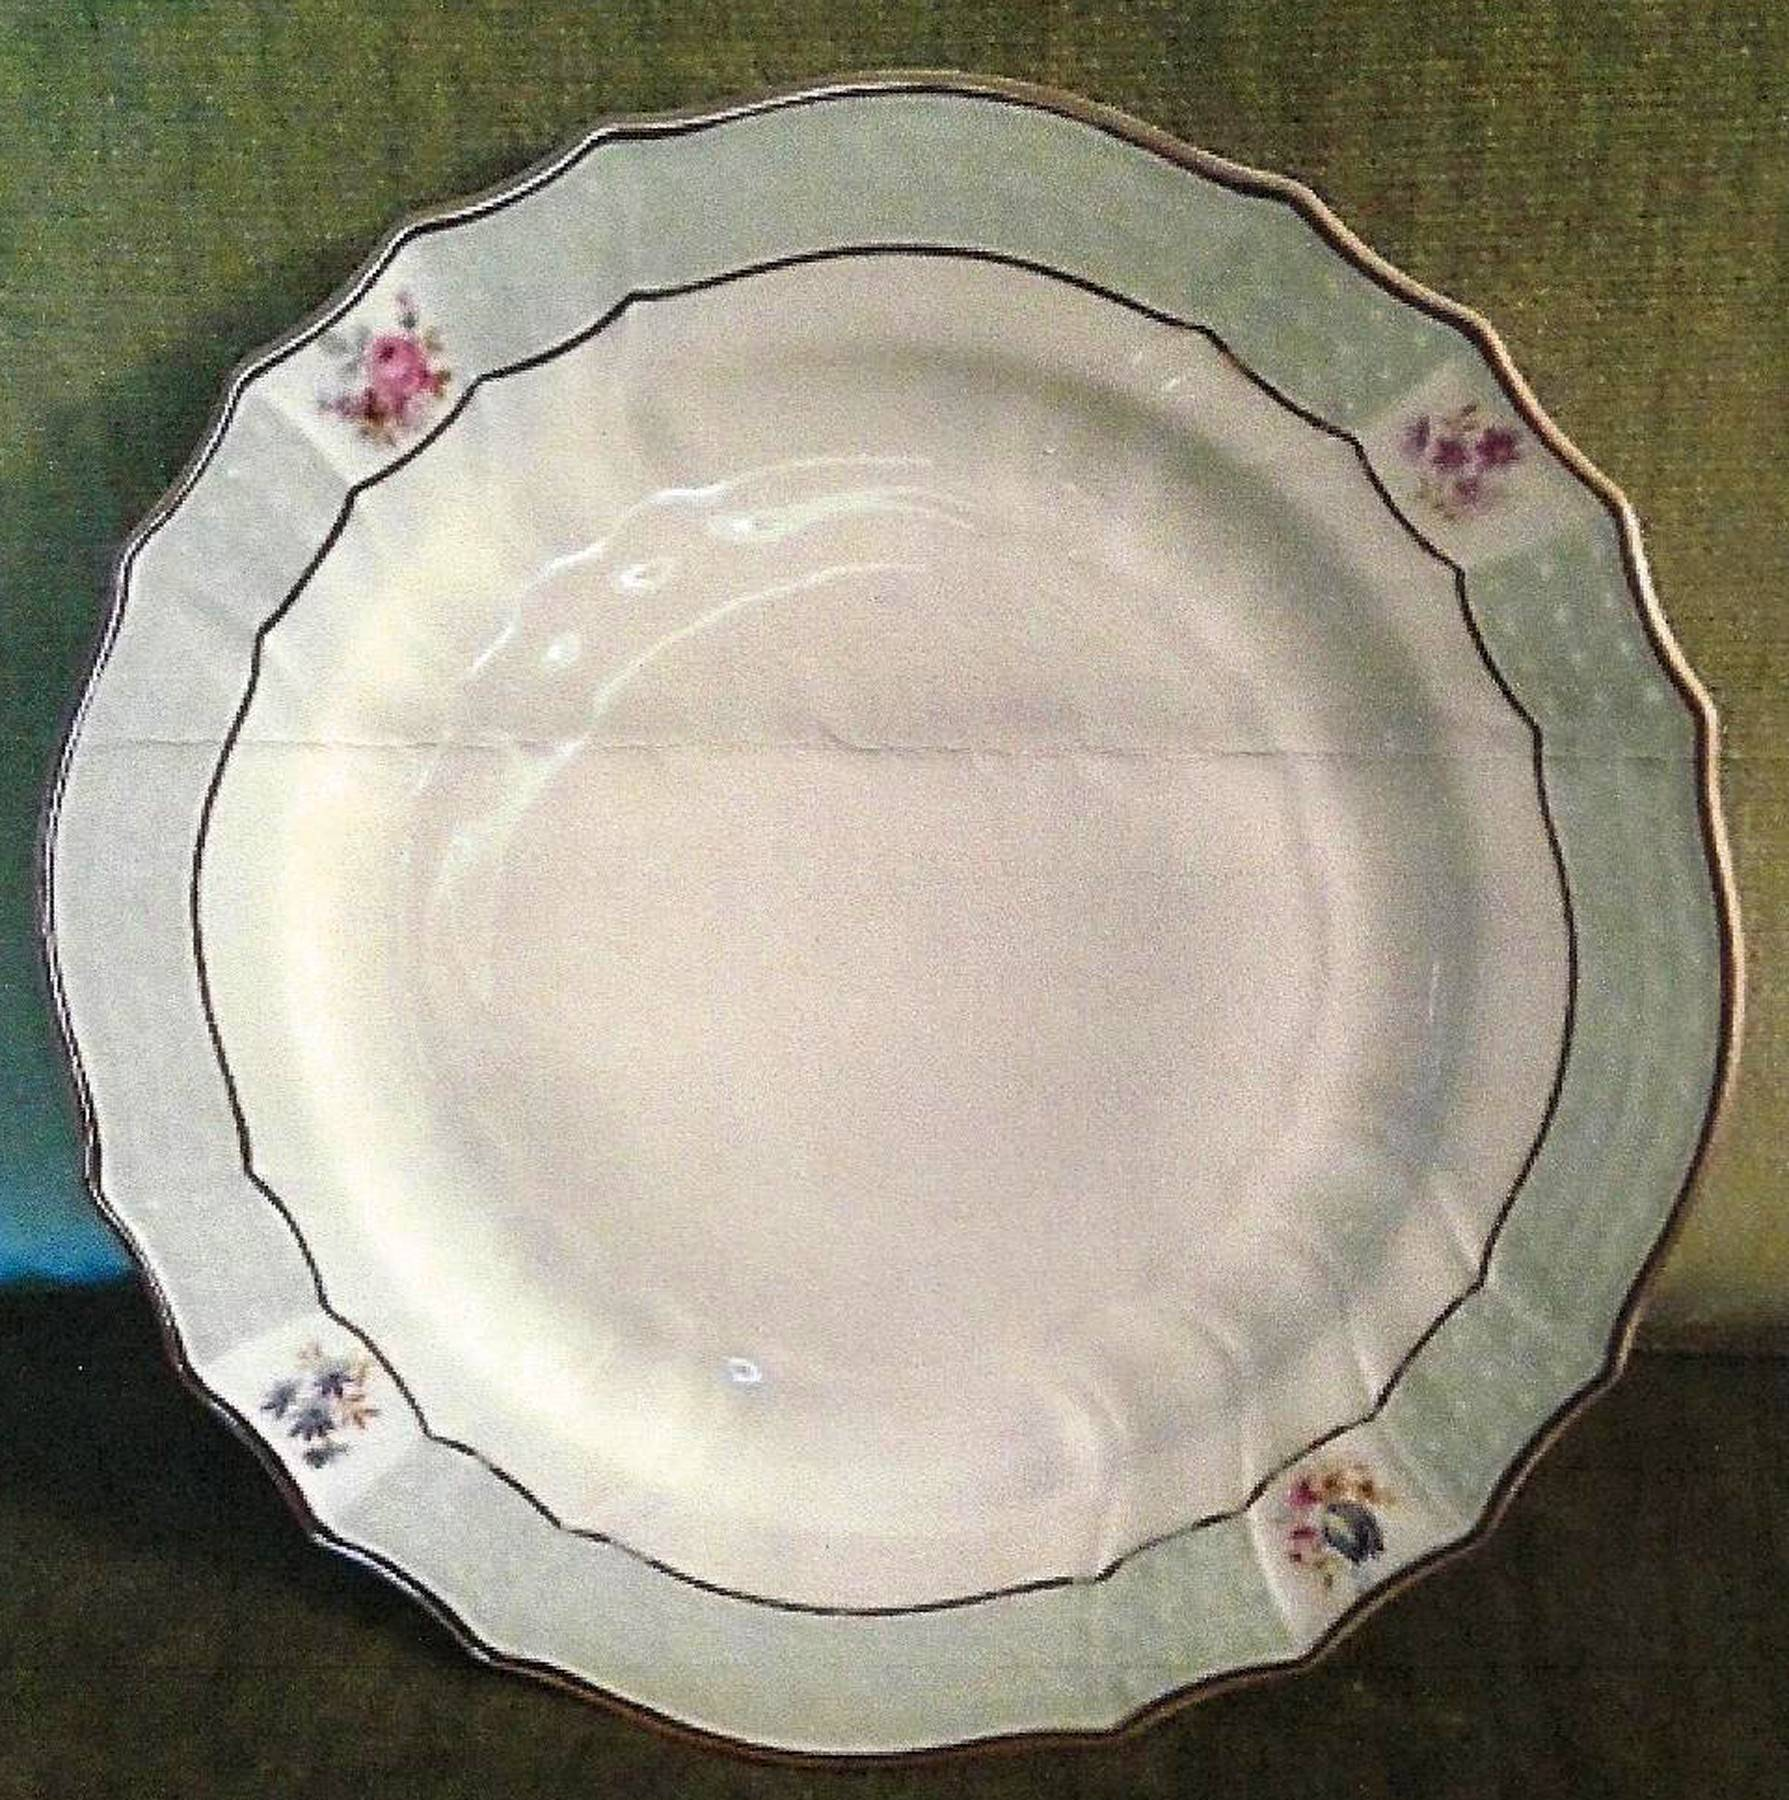 Hutschenreuther Porcelain Factory maker of this set was founded in Selb Germany & Porcelain dinnerware was made in Germany